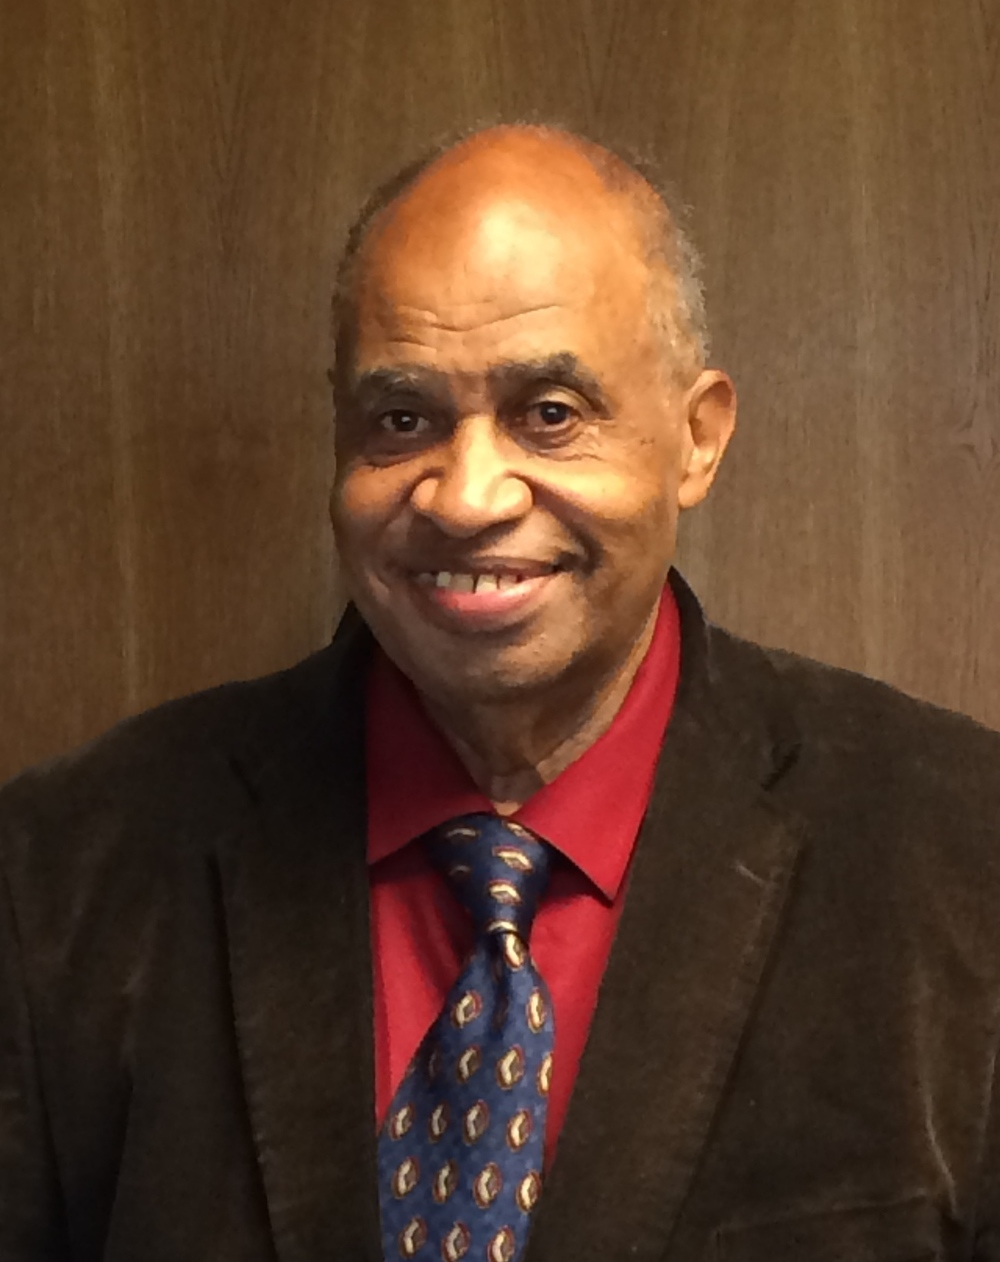 Carl Anthony  , co-founder of environmental justice and regional equity movements and organizations including Breakthrough Communities and Urban Habitat.